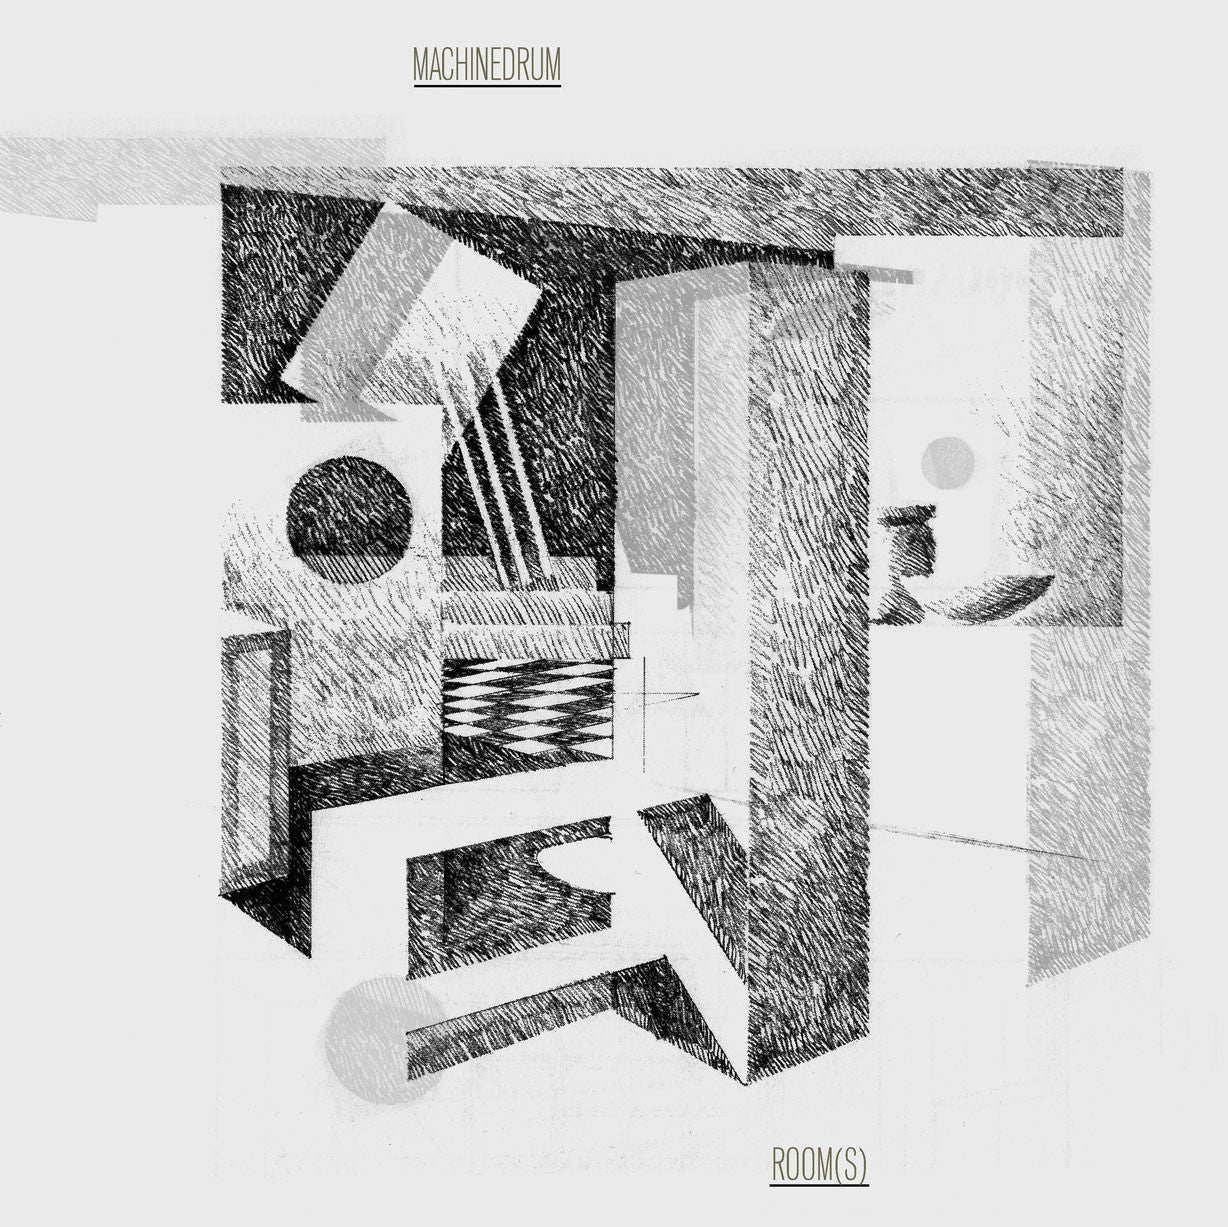 Machinedrum - Room(s) - Unearthed Sounds